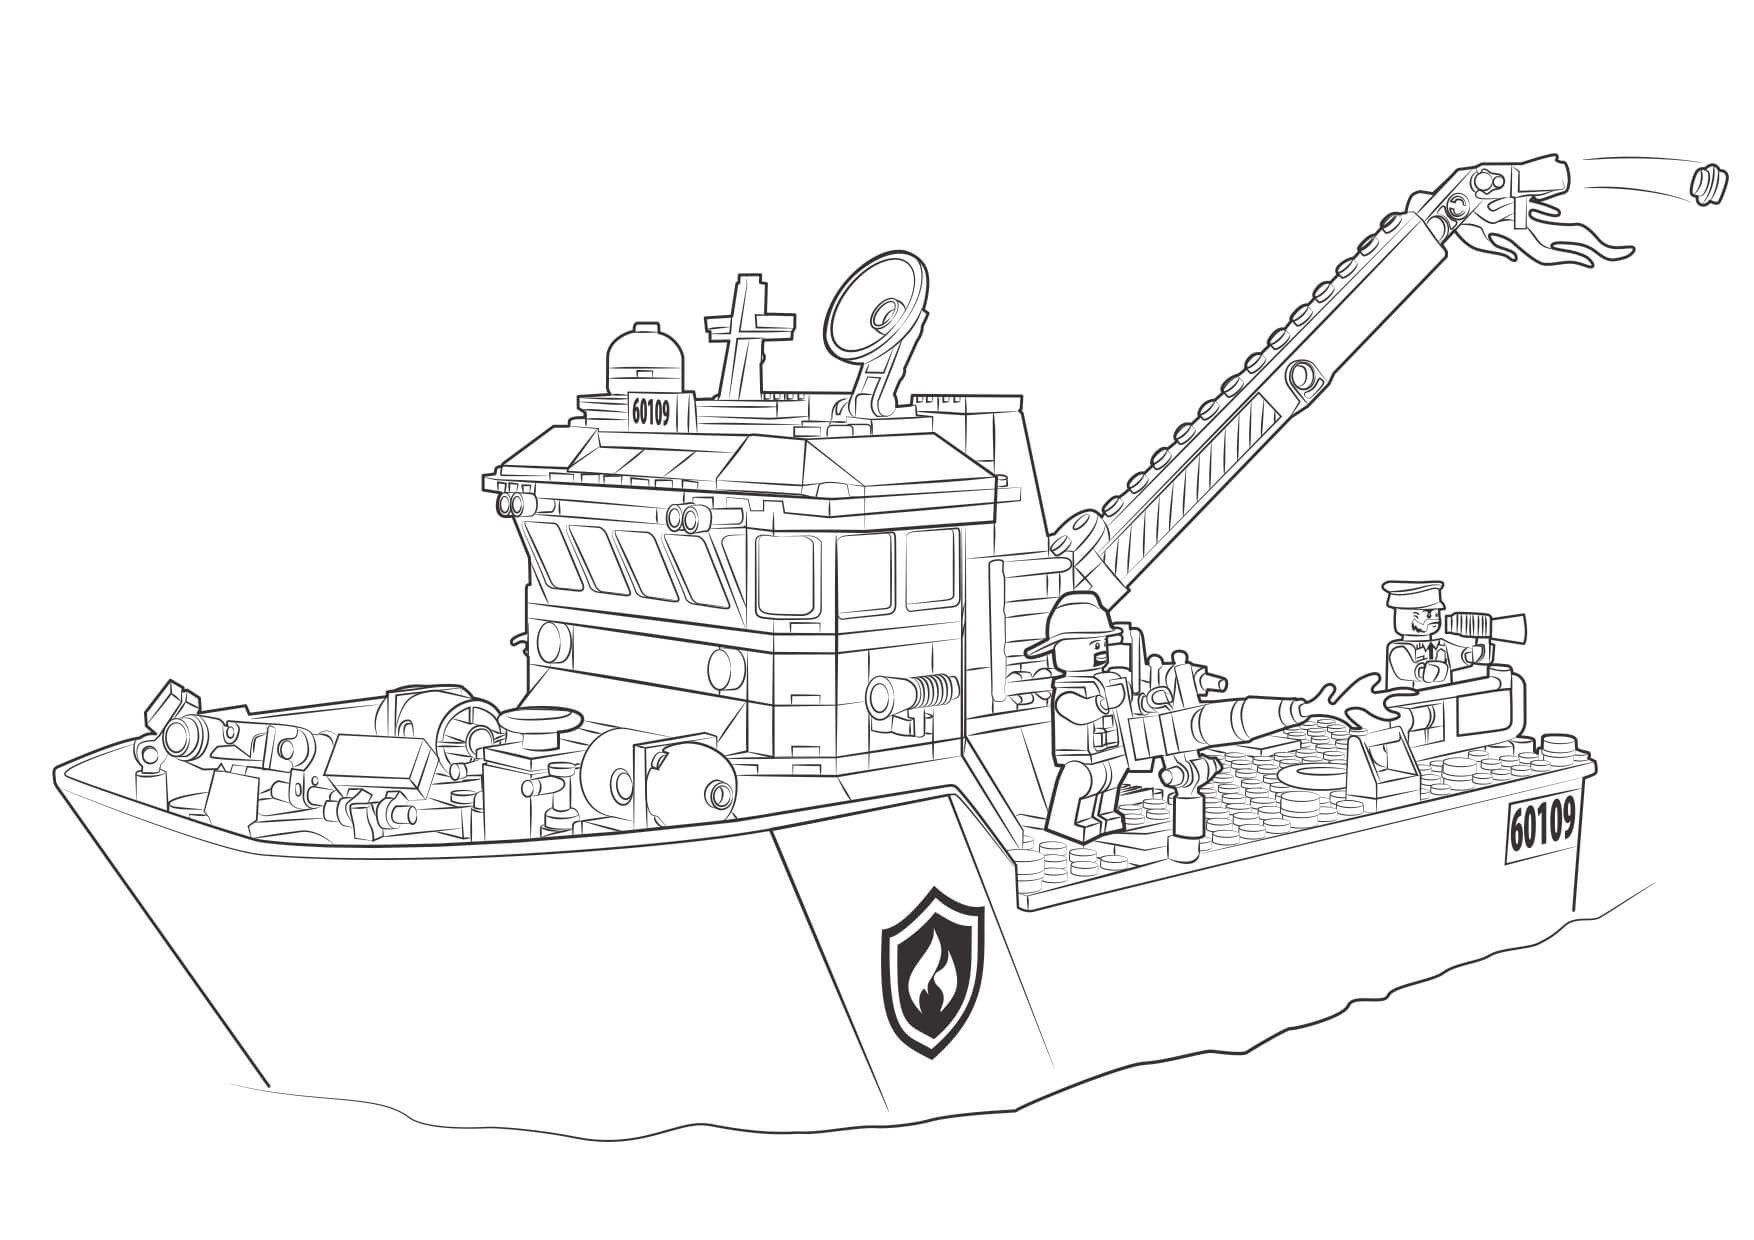 police boat coloring page police boat coloring pages food ideas coloring boat police page